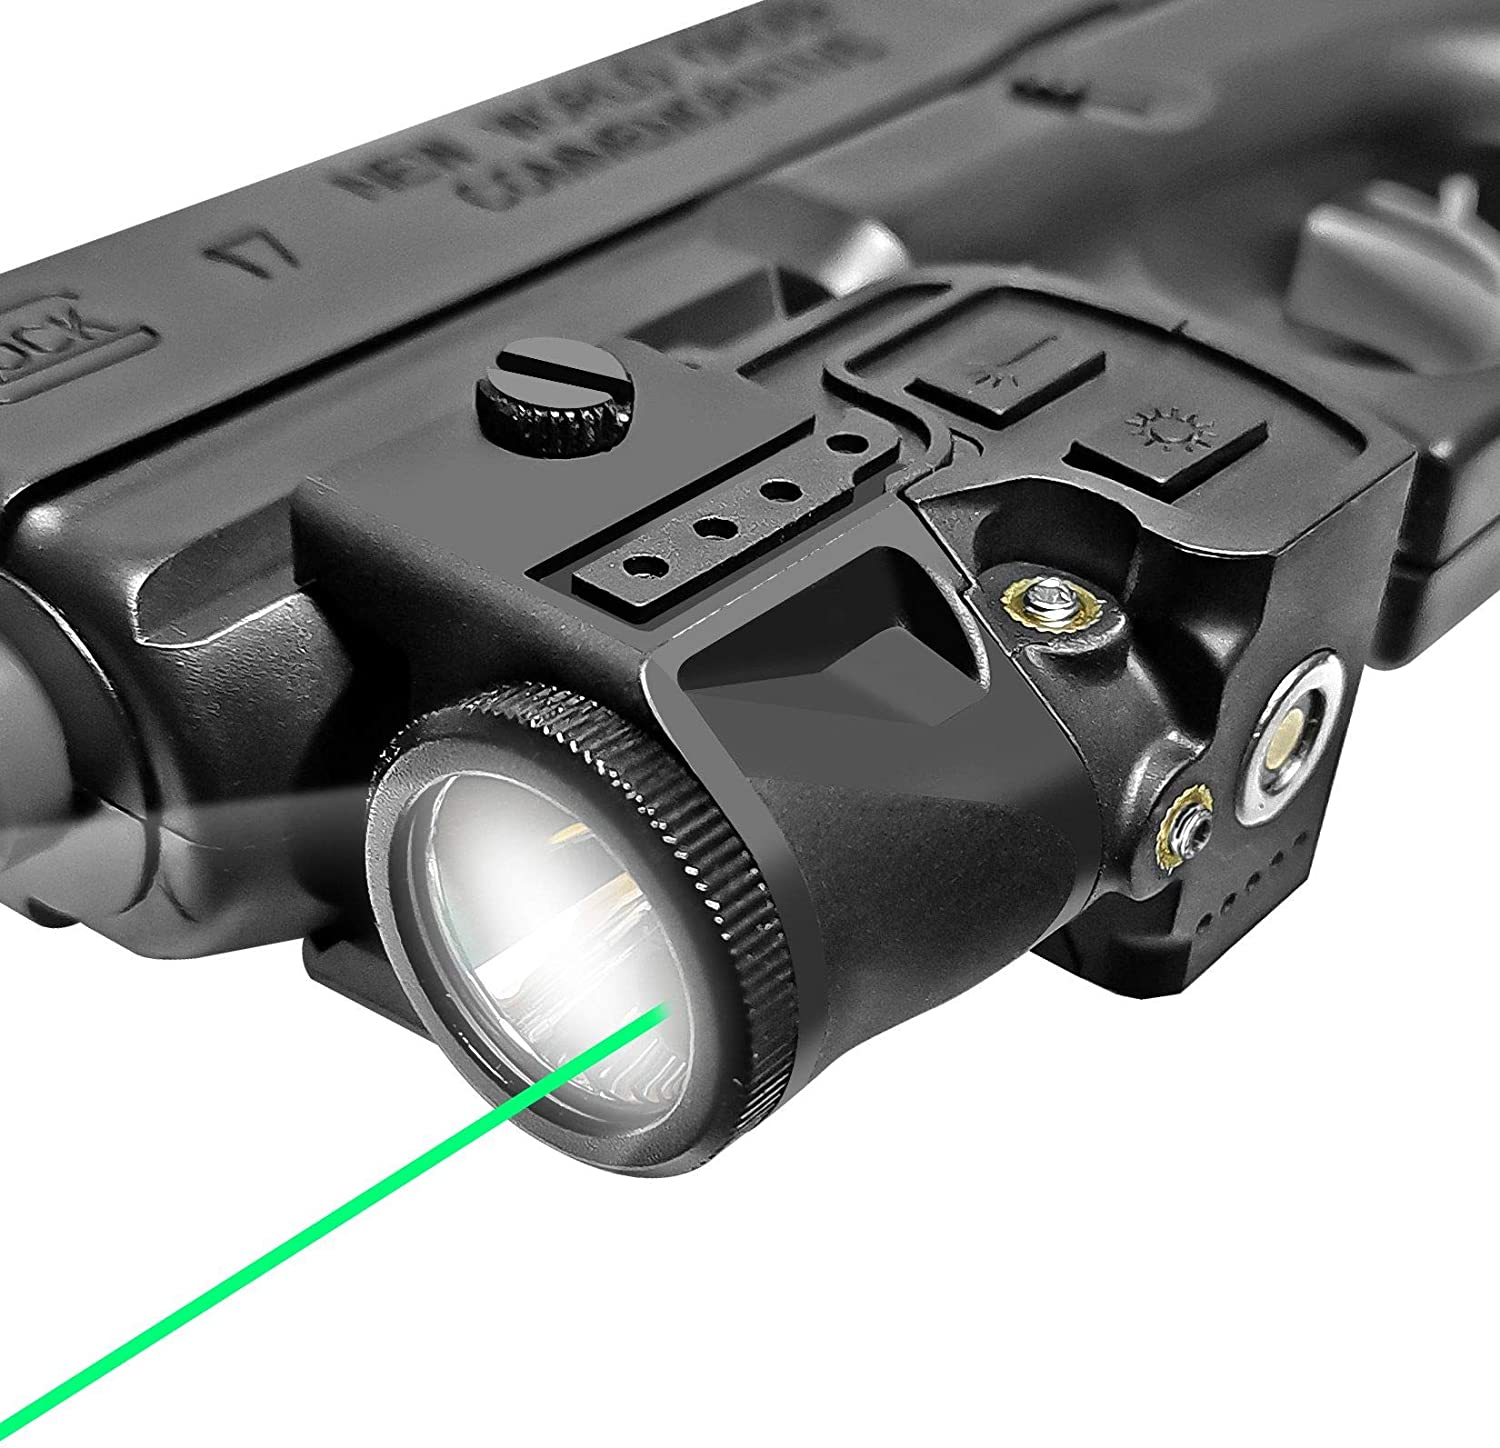 Flashlight Laser Sight Combo,Compact Green Laser and Light Combo,Tactical Picatinny